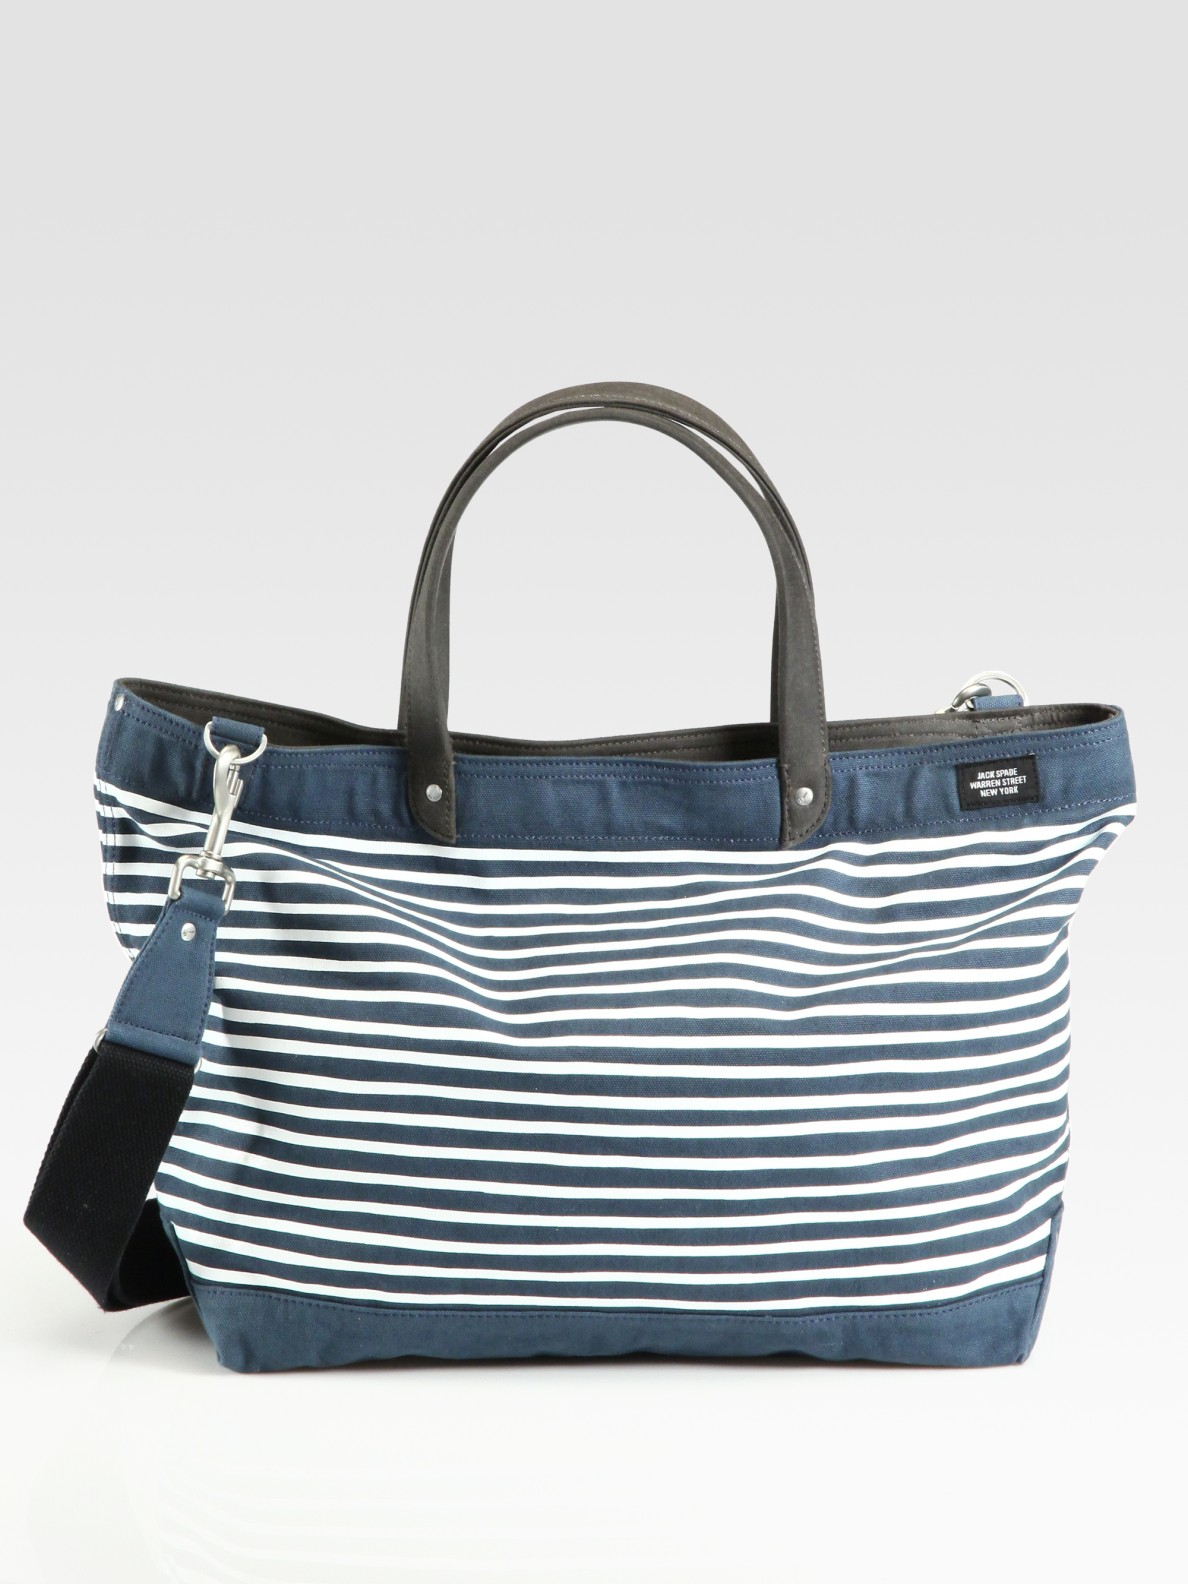 7680c5a6b Jack Spade Coal Striped Waxed Cotton & Canvas Bag in Blue for Men - Lyst